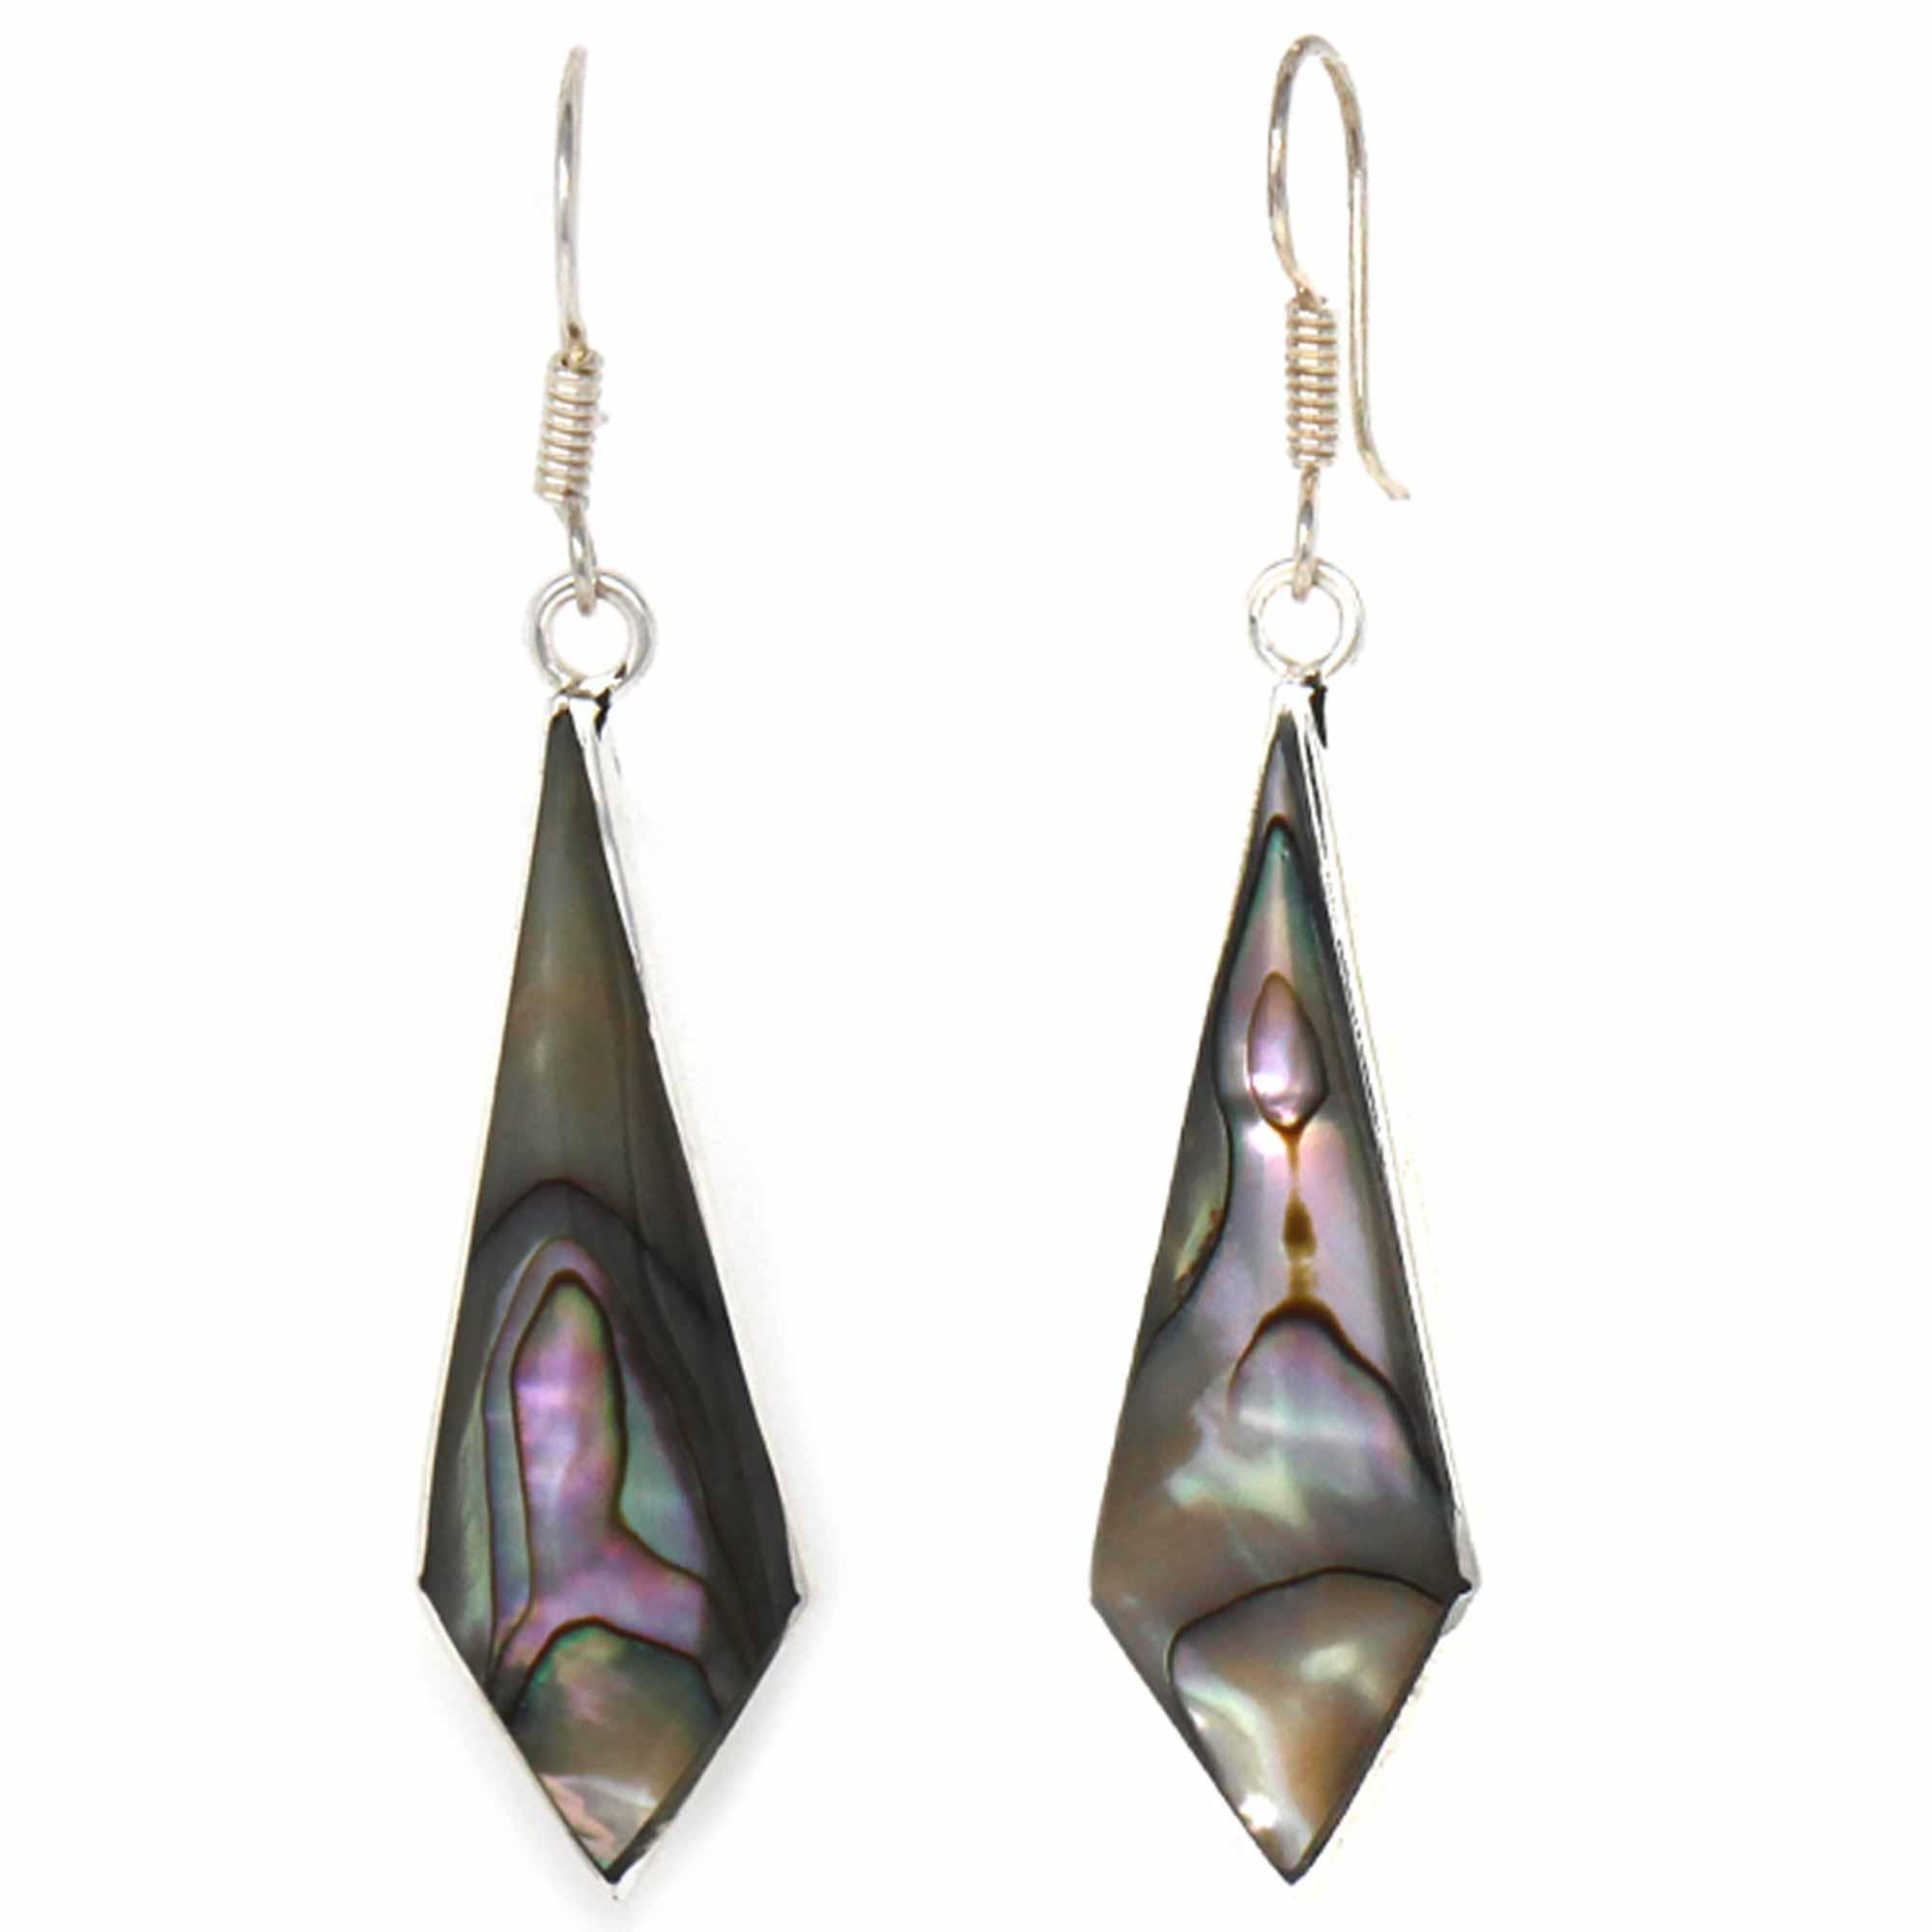 Abalone Diamond-Shaped Dangle Earrings